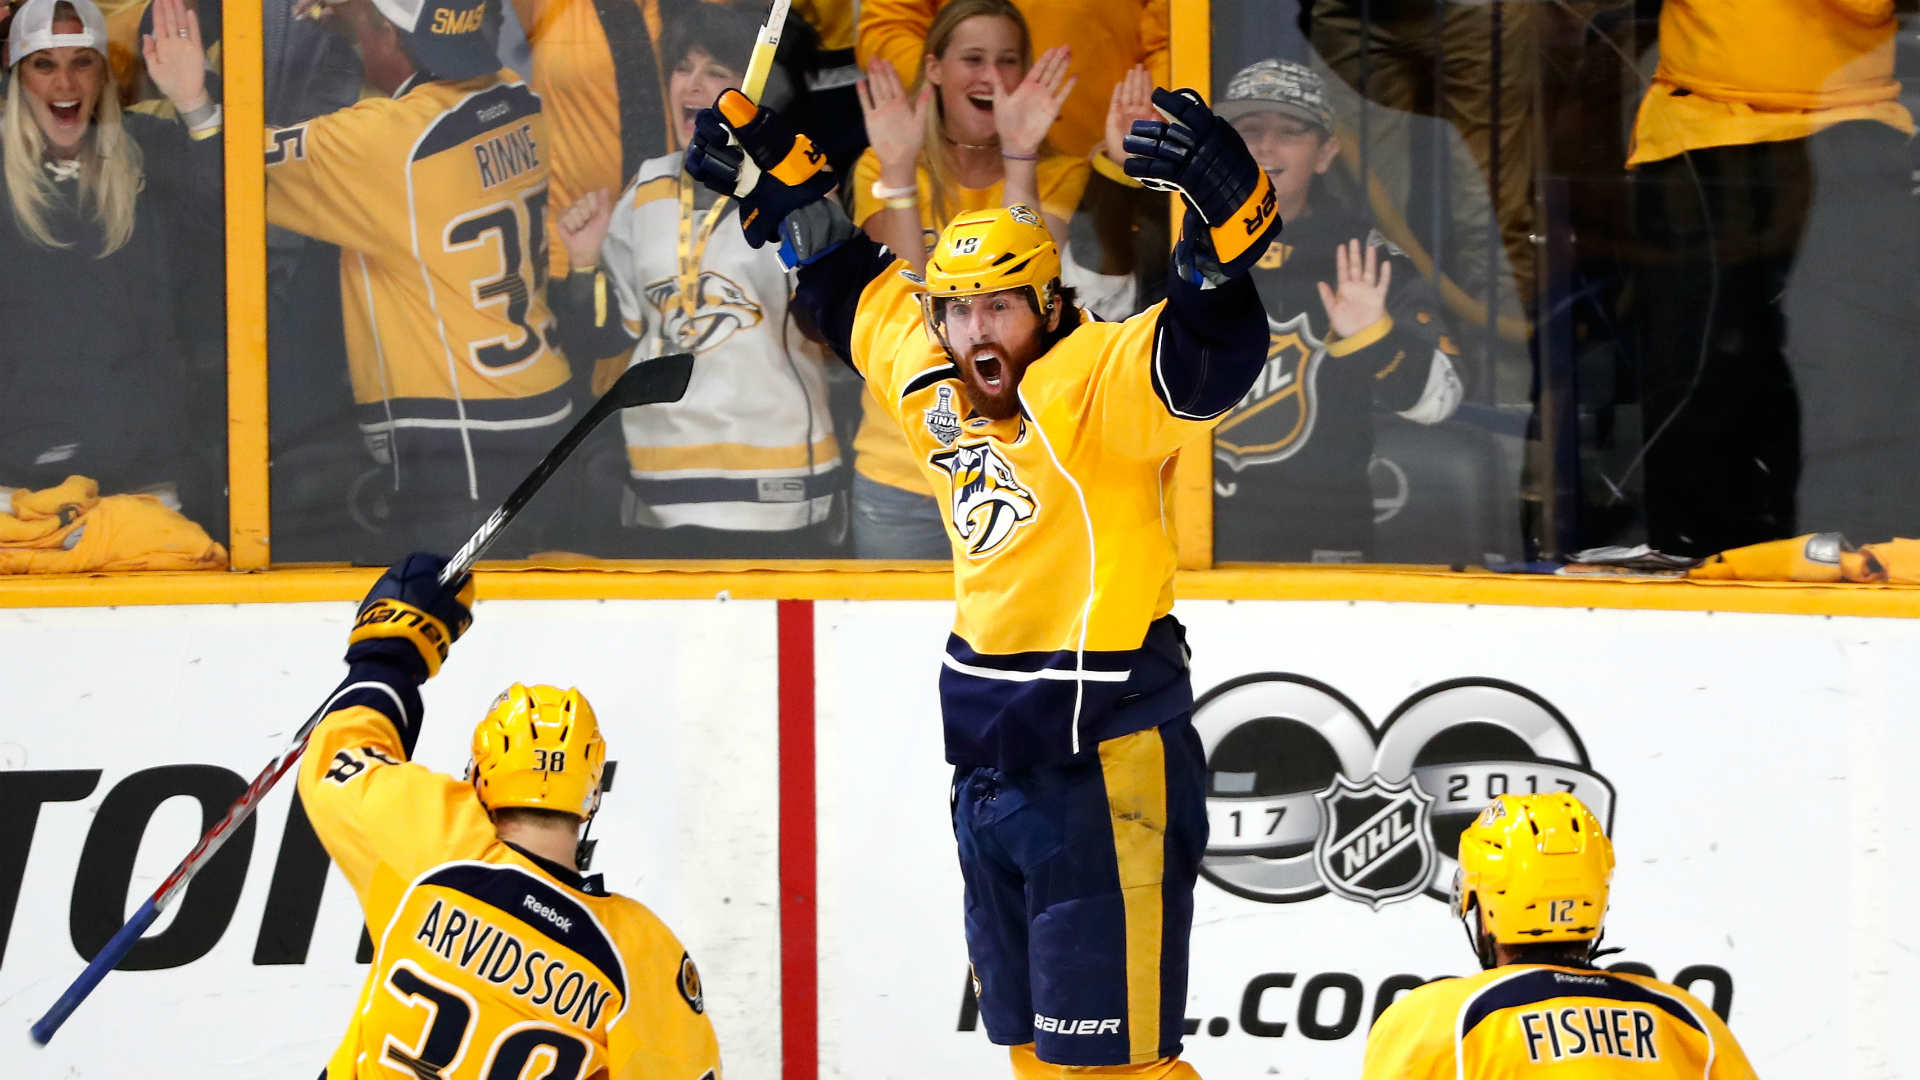 Predators fans bring 'It's all your fault' chant to Stanley Cup Finals